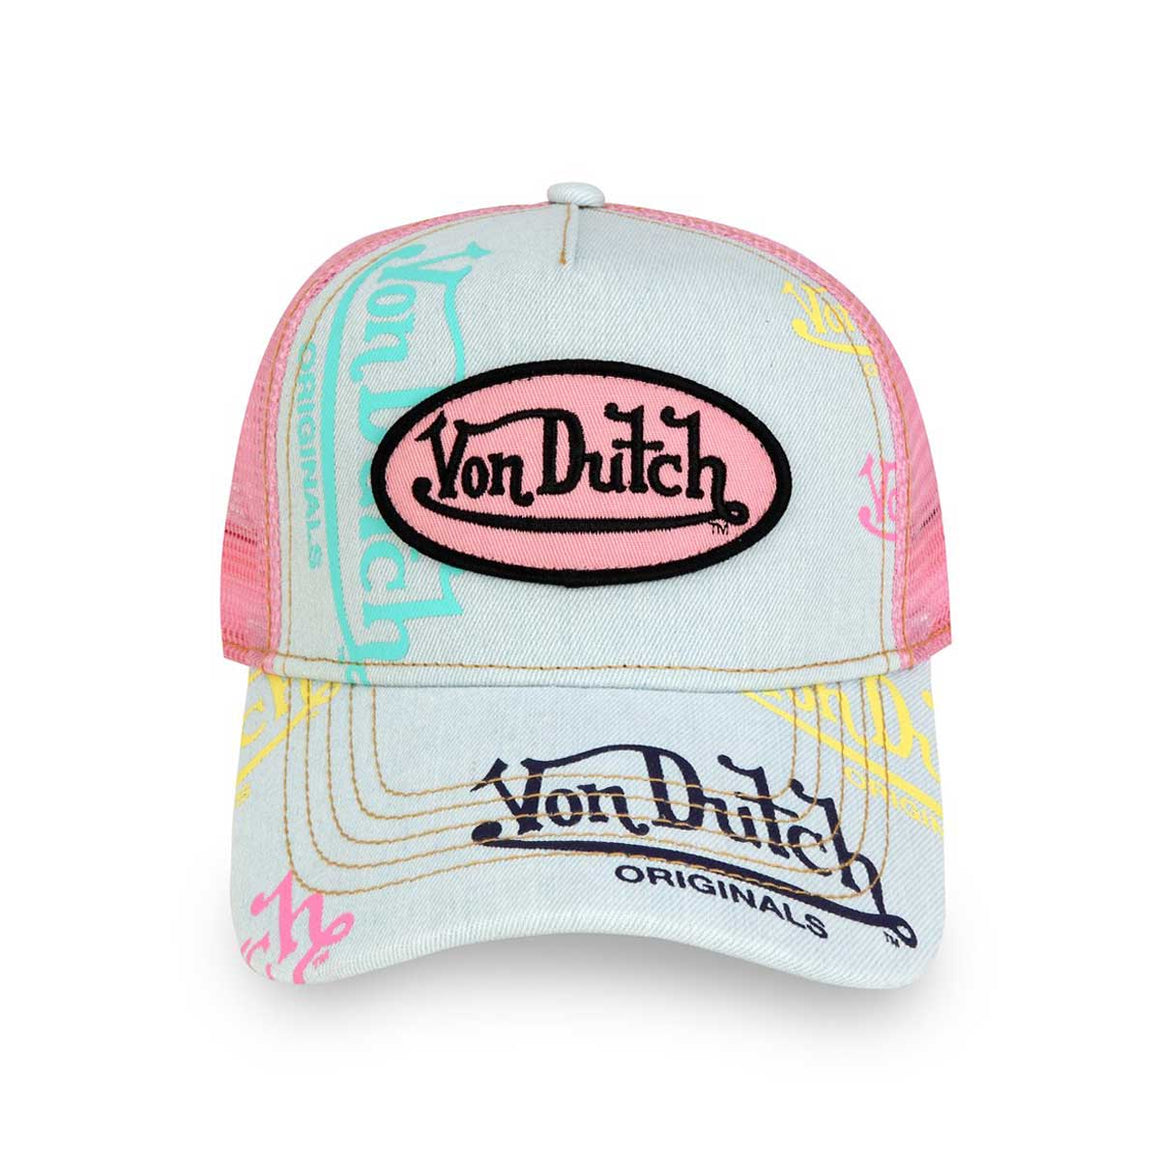 LIGHT DENIM AND PINK LOGO TRUCKER